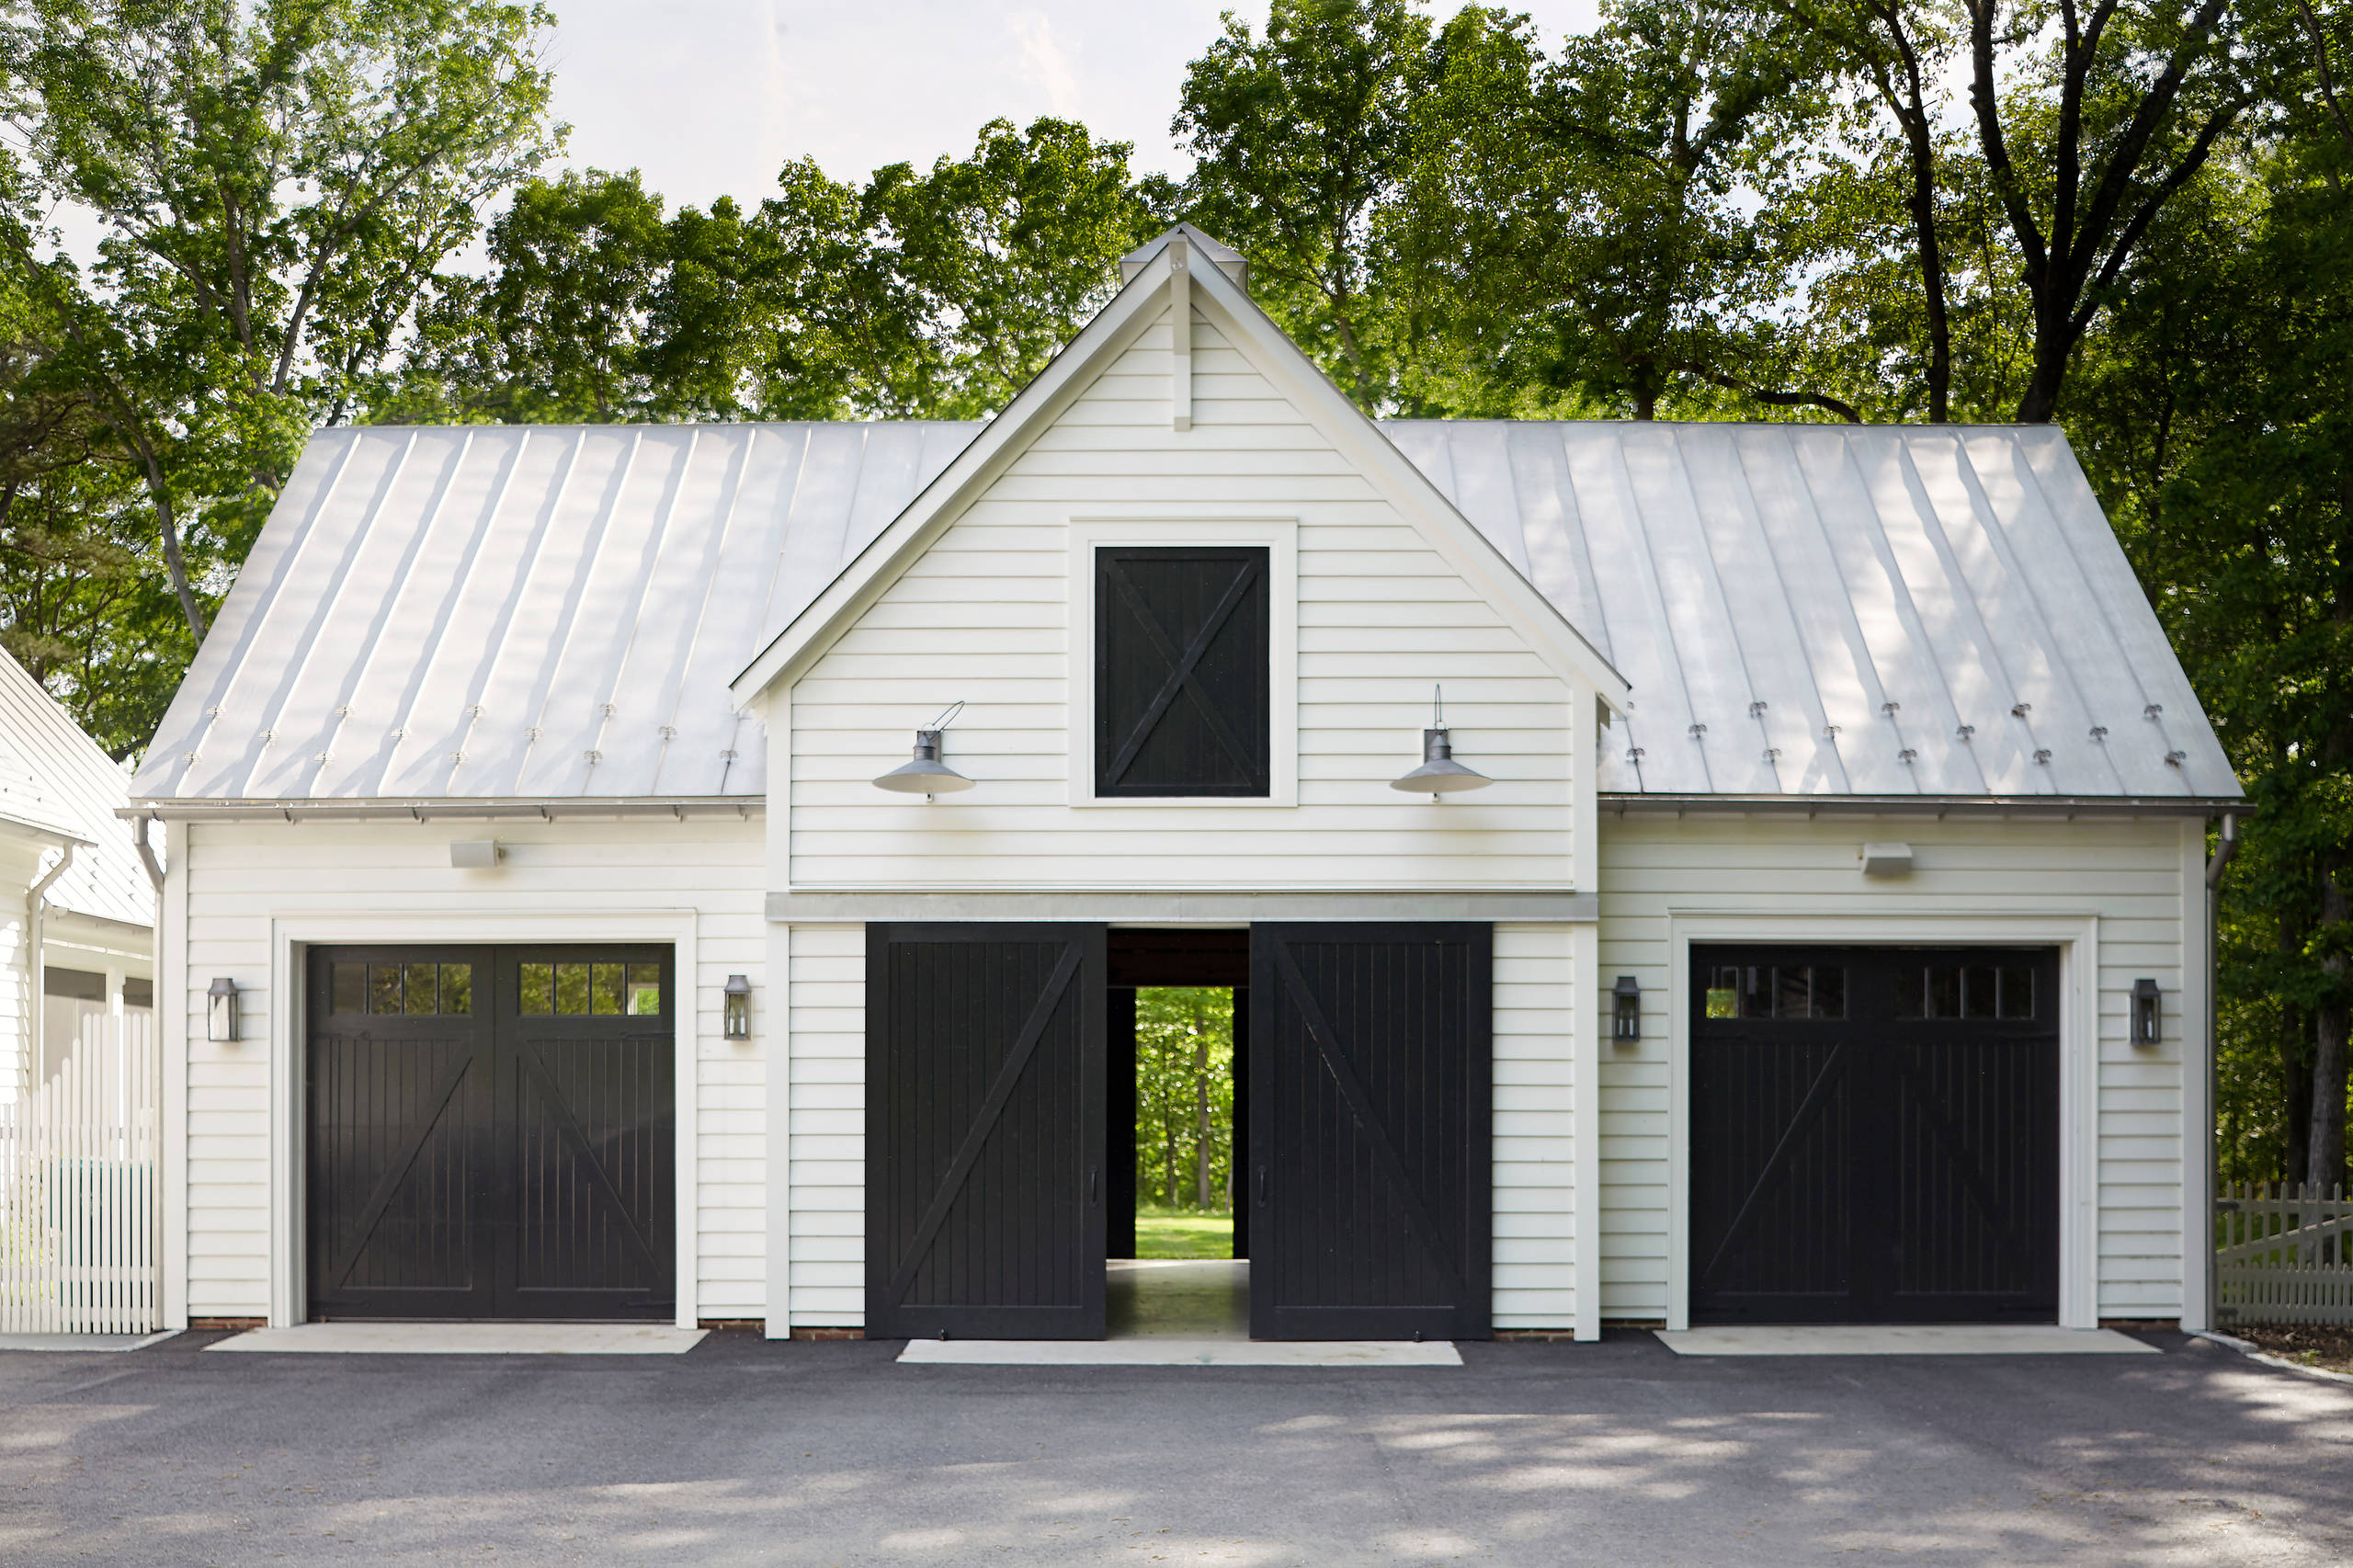 75 Beautiful Detached Garage Pictures Ideas February 2021 Houzz